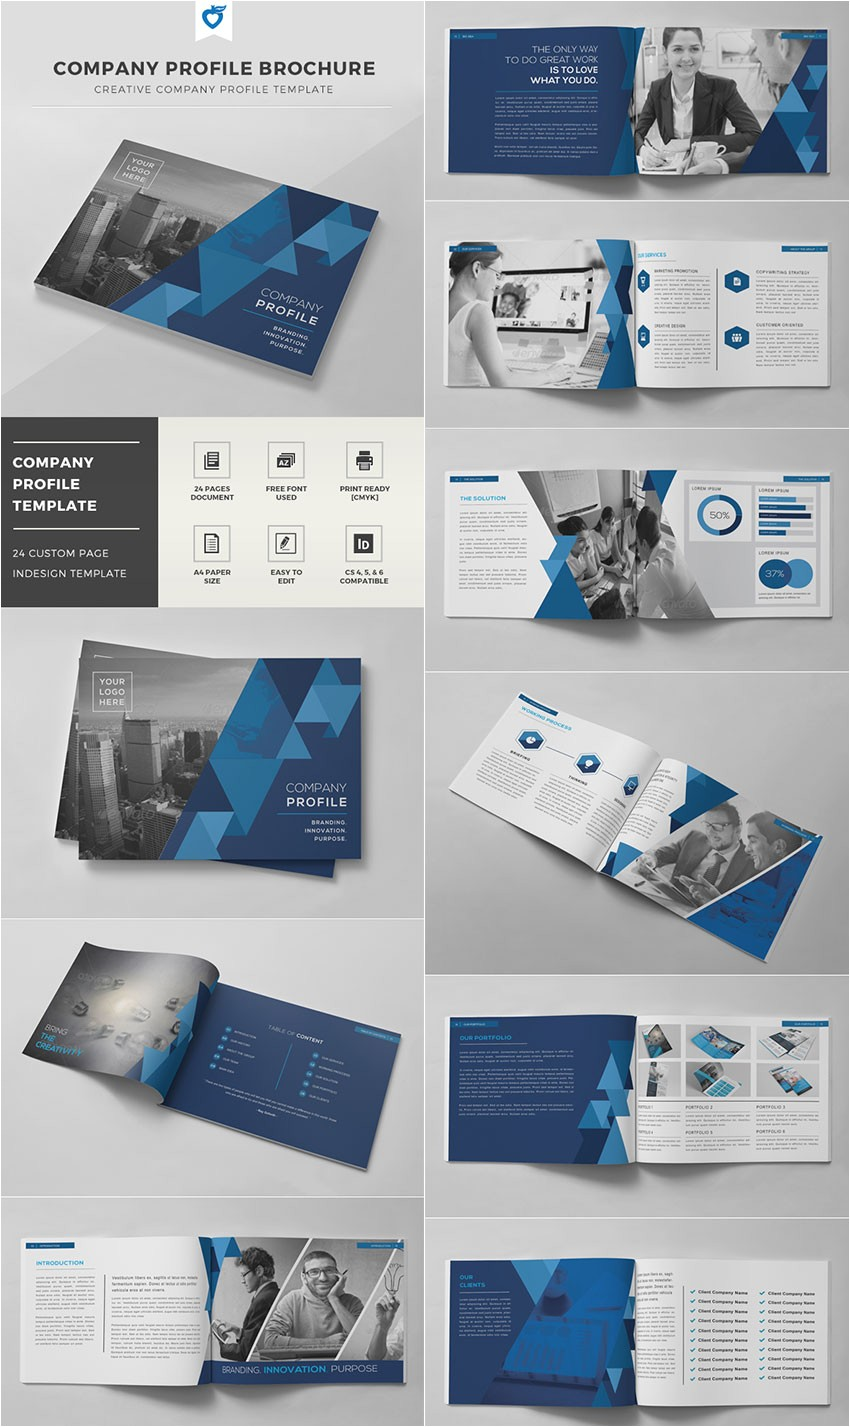 20 best indesign brochure templates for creative business marketing cms 26522